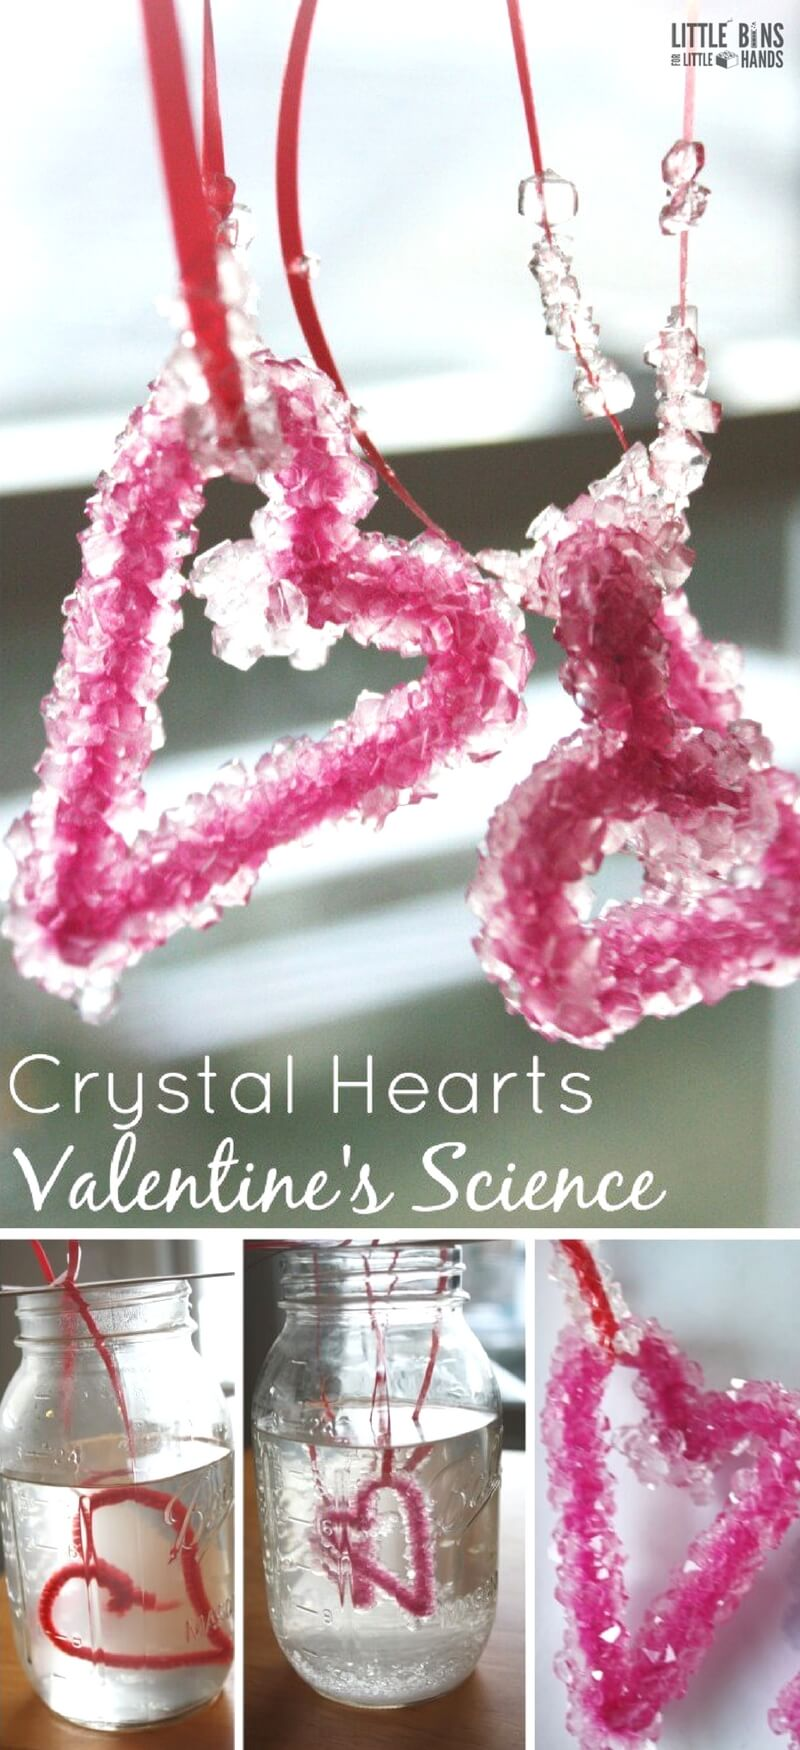 Growing crystals is actually pretty easy to do at home and makes a great science experiment for kids. These Crystal hearts are perfect for a Valentine's Day themed science activity. Have fun with science and create themes for the holidays. My son loves holiday themed science activities, and I think it really helps his love of science to come out!